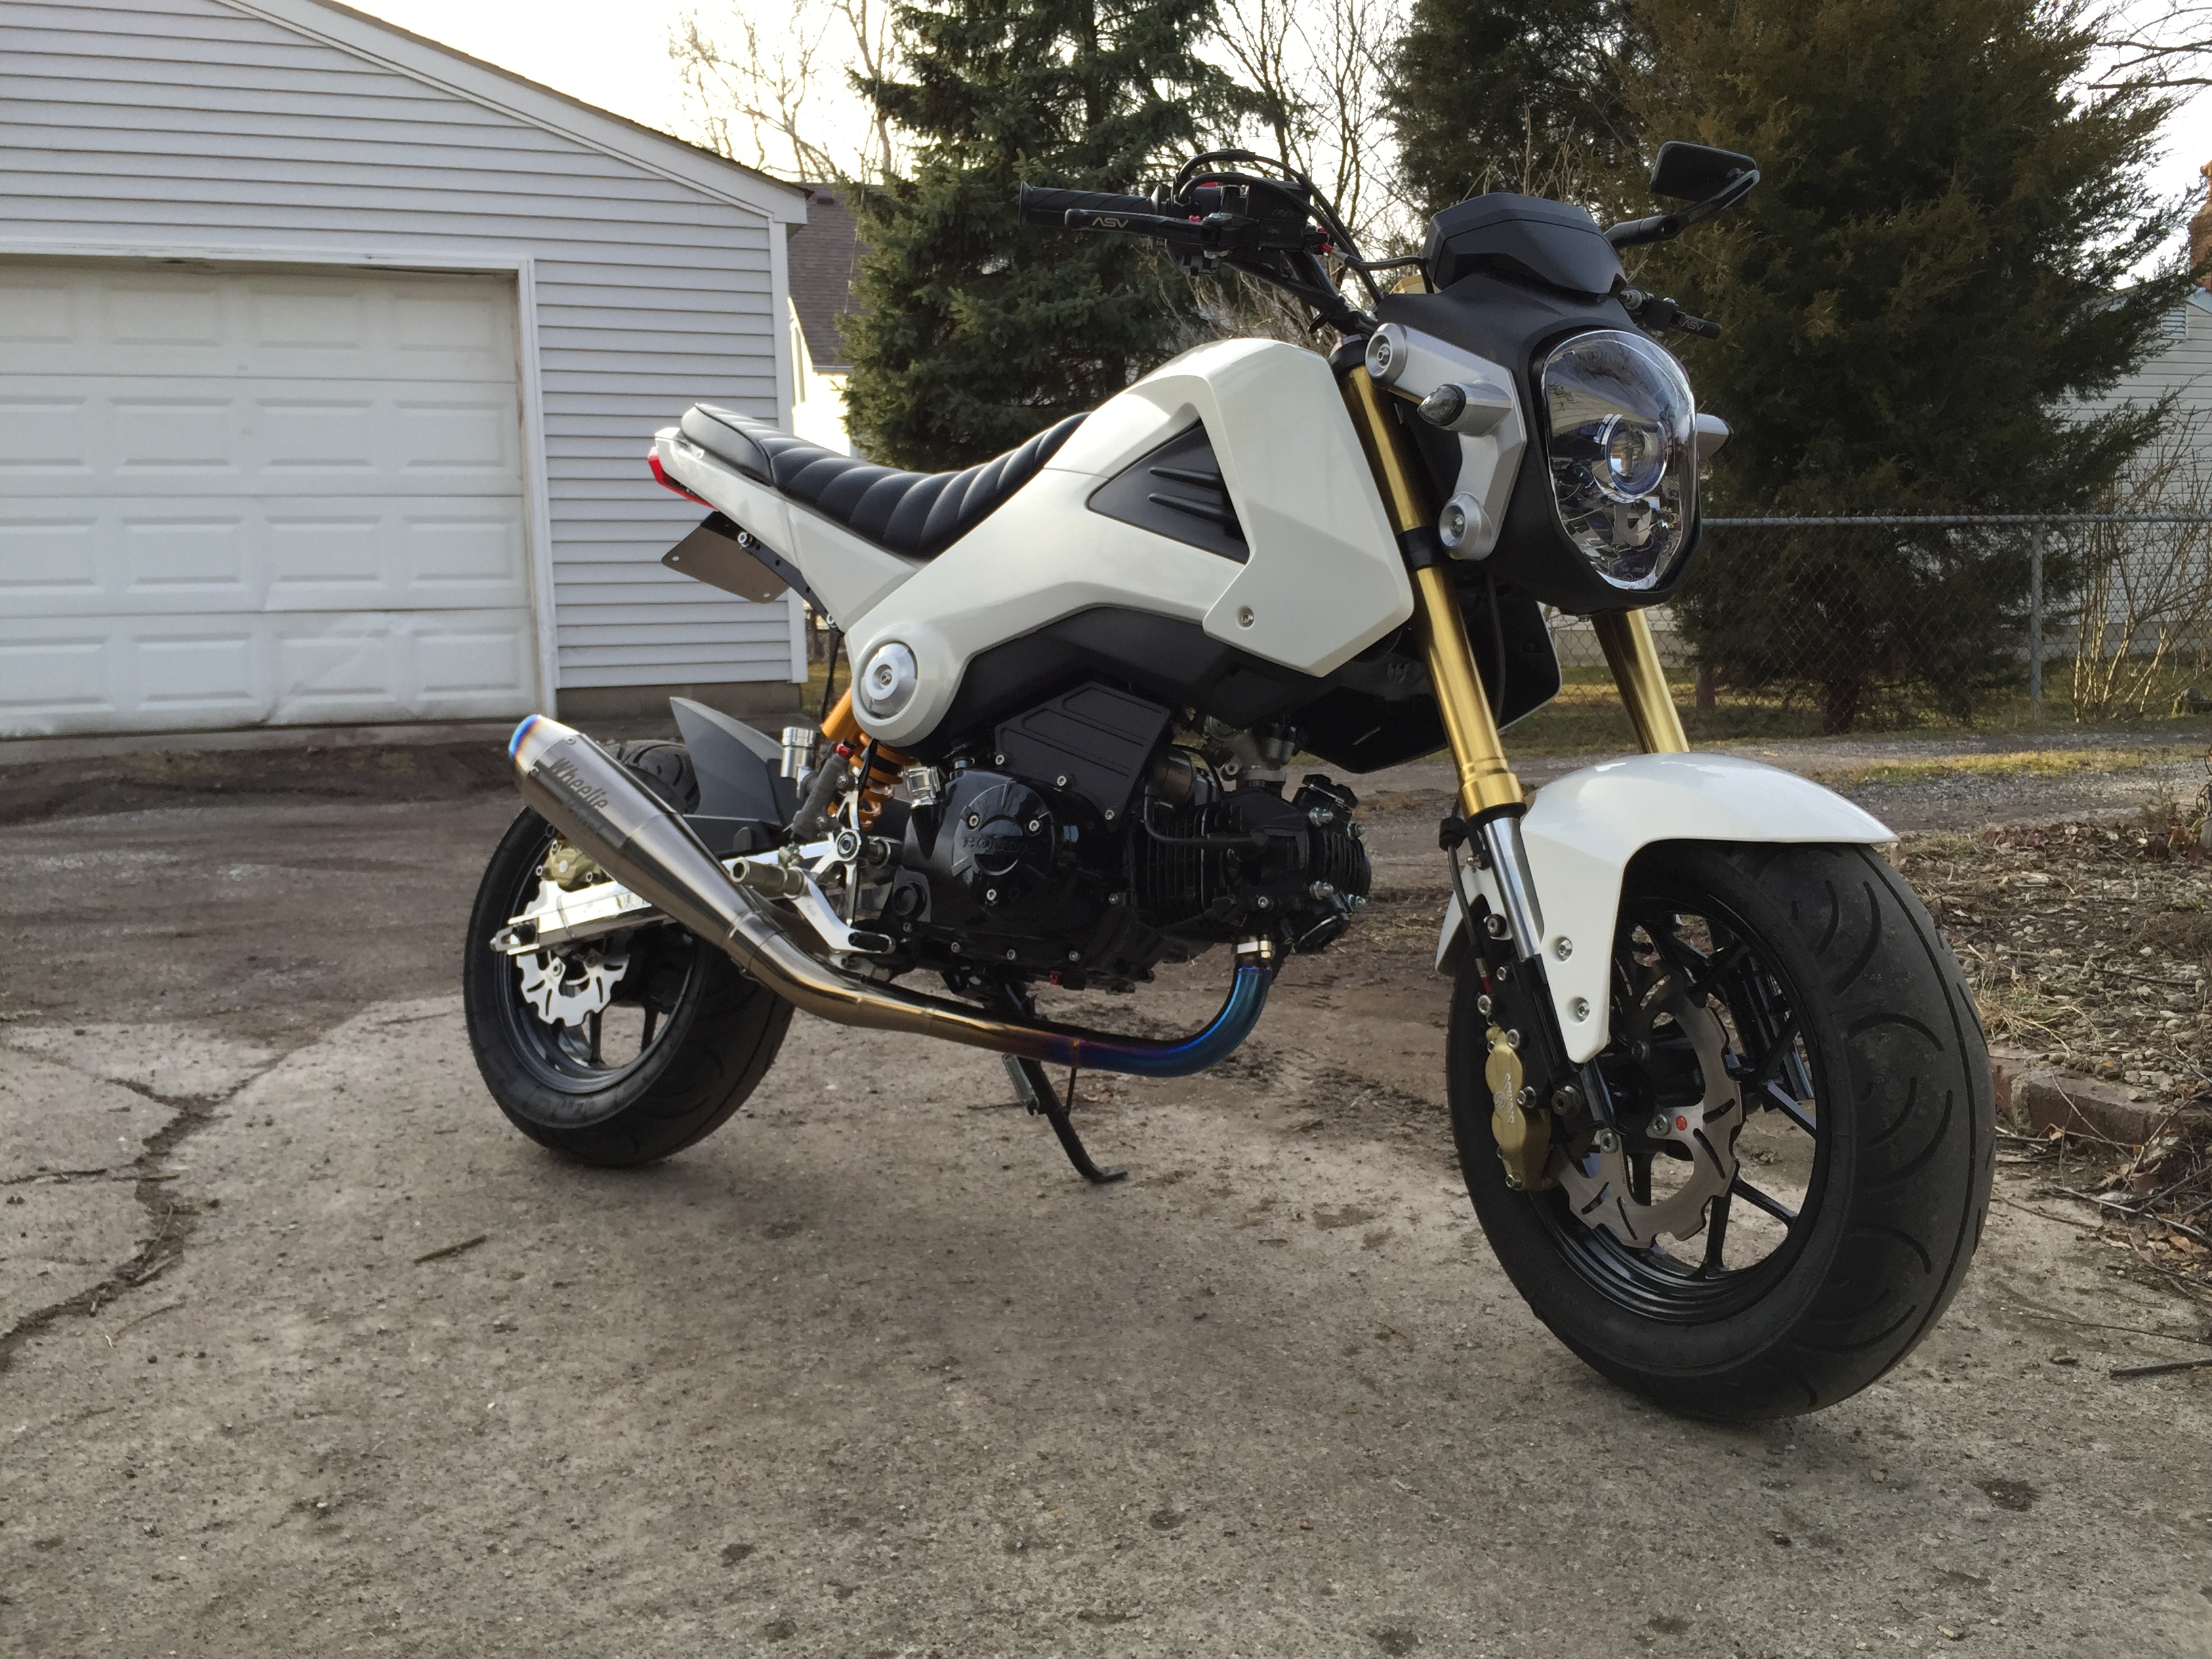 2015 Honda Grom >> March 2015 Honda Grom Of The Month Contest Aftermaket Mods Edition